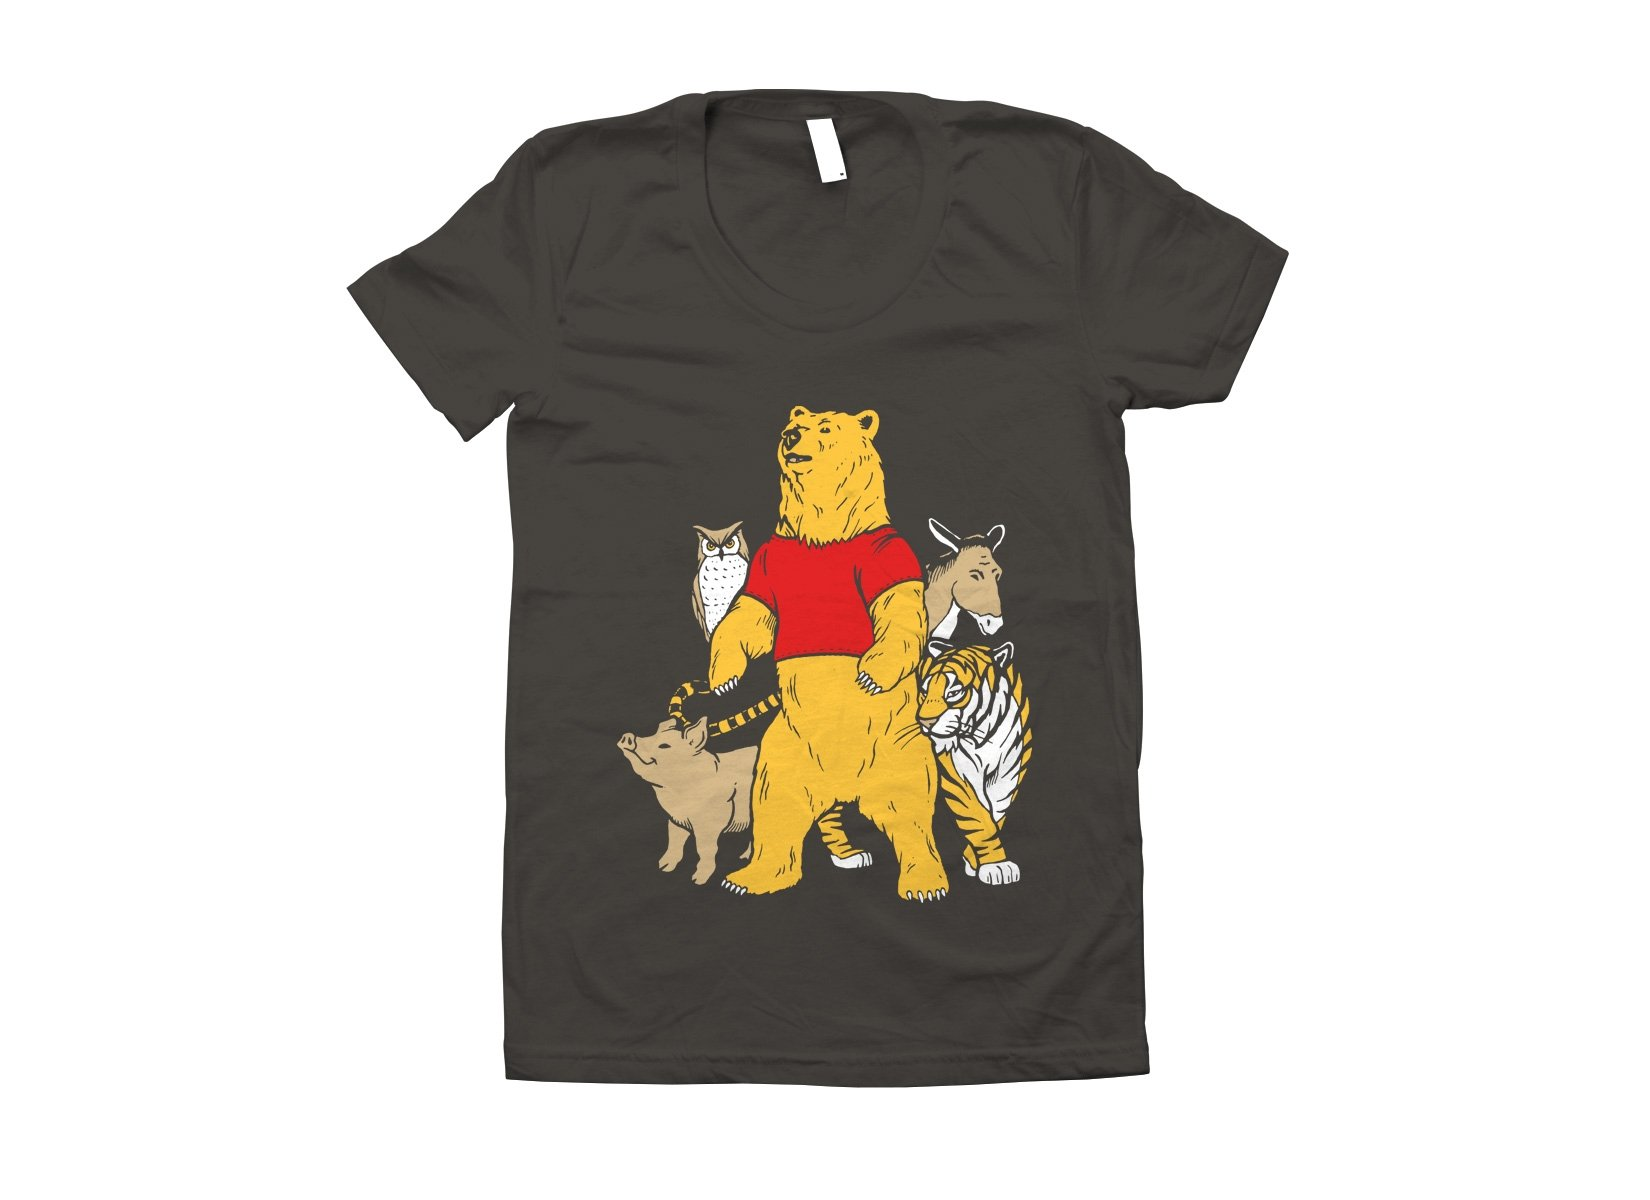 Bear And Friends on Juniors T-Shirt